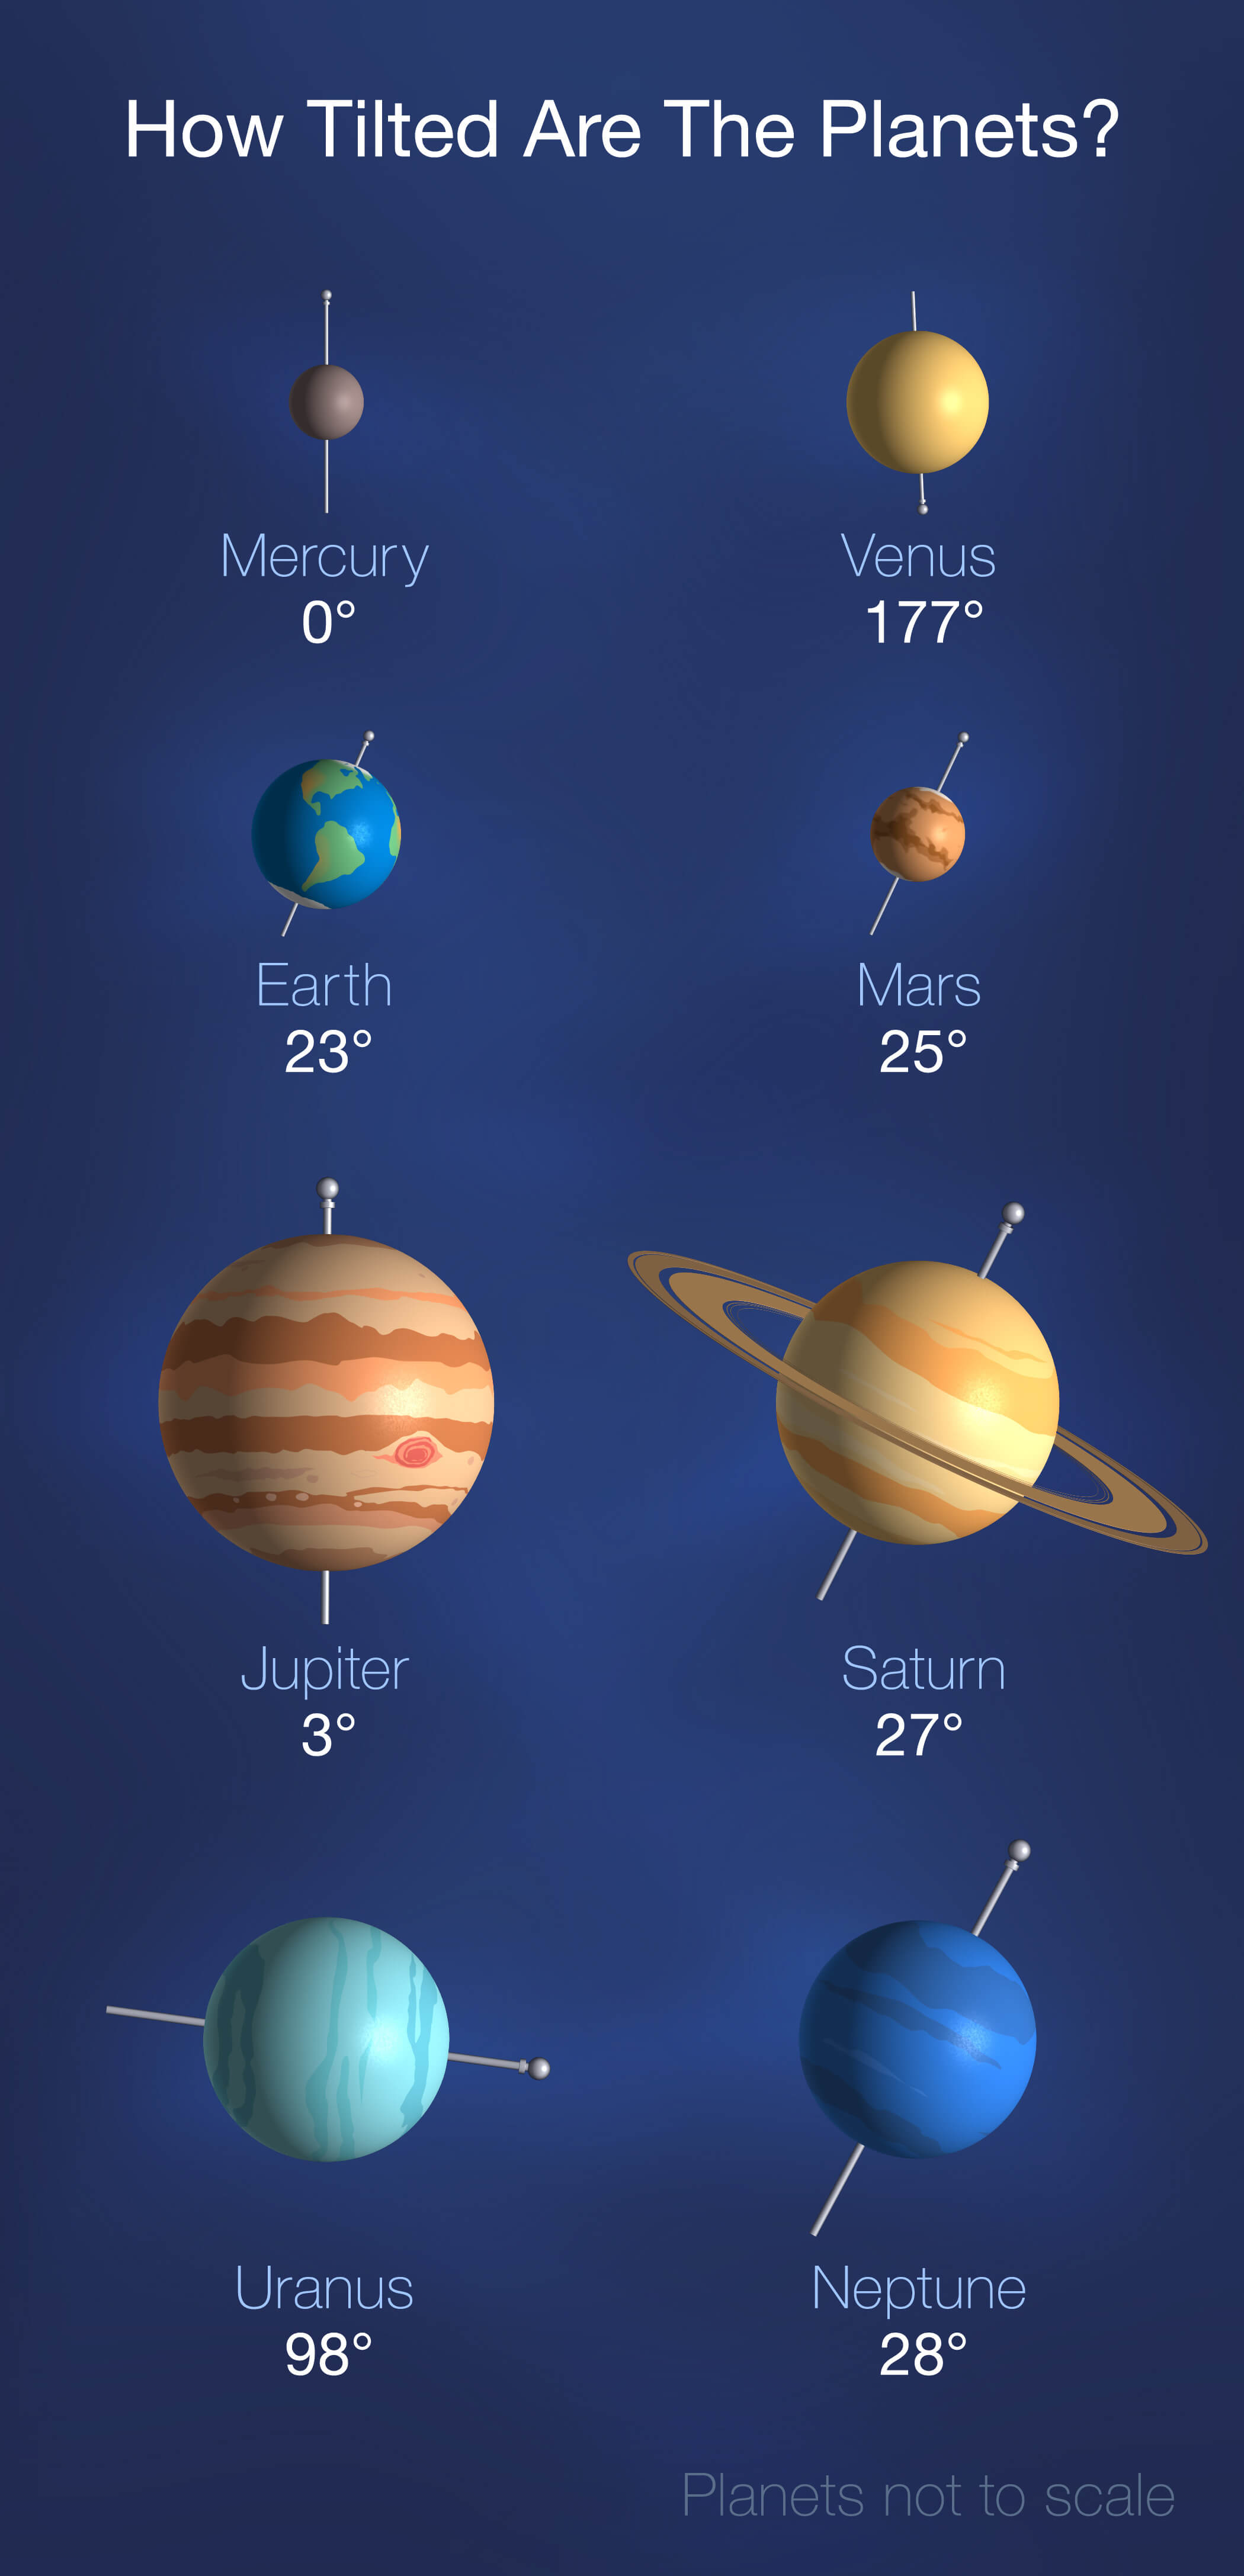 This graphic shows how much each planet in our solar system tilts on its axis.